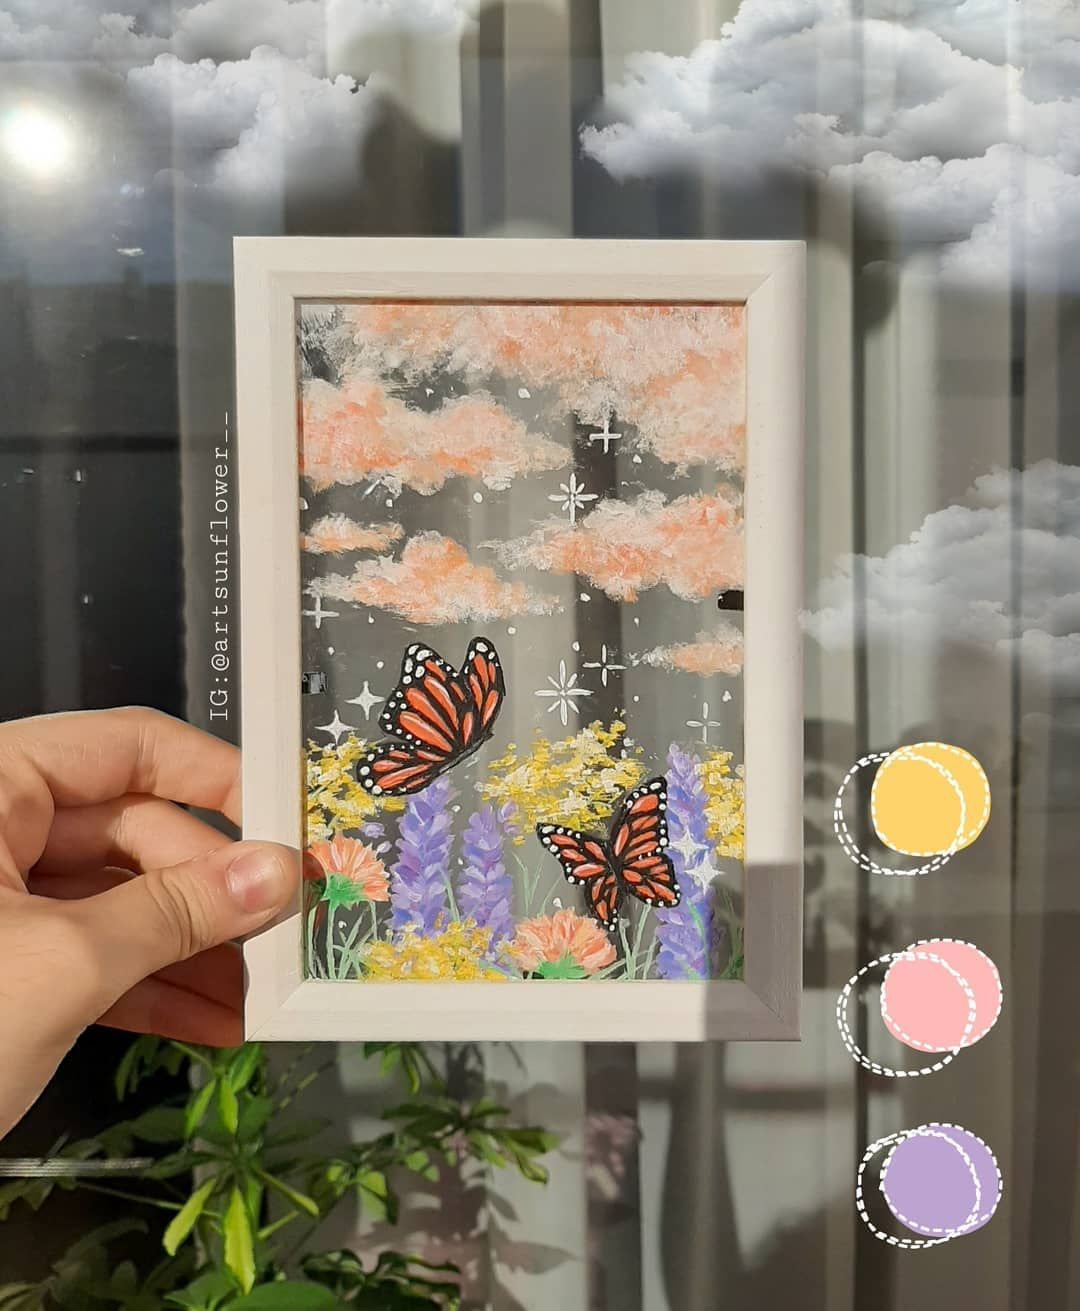 Mary On Instagram Hii I Painted This Yesterday And It S Look Soo Cute And Aesthetic I M Really Proud Of In 2020 Small Canvas Art Mirror Painting Aesthetic Art